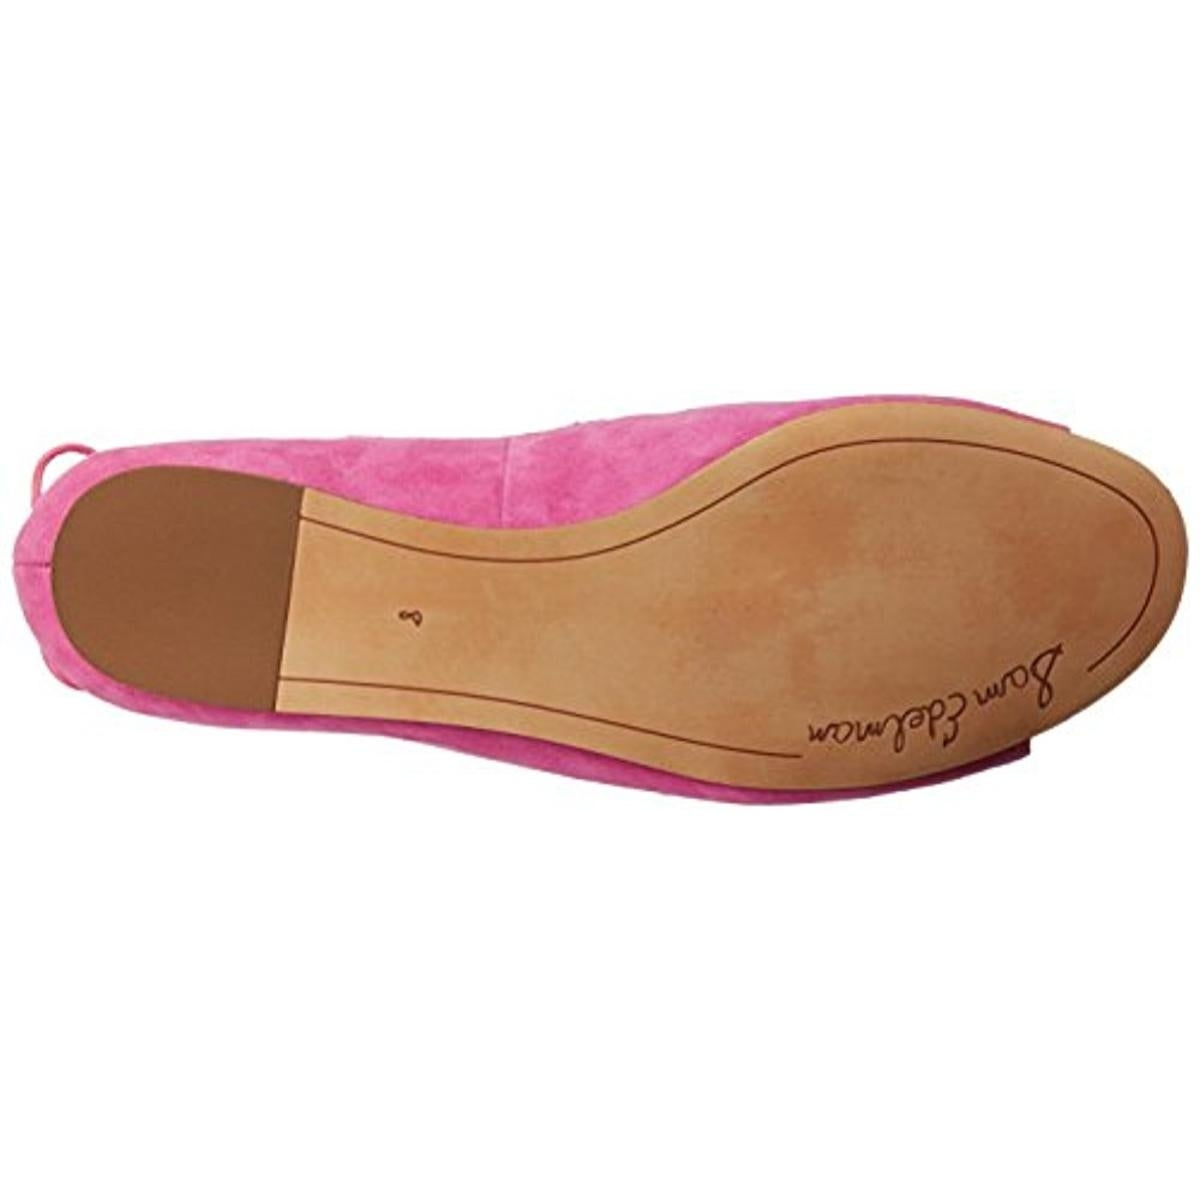 fcae5805bdcc Shop Sam Edelman Womens Barbara Flats Suede Open Toe - Free Shipping On  Orders Over  45 - Overstock - 21027721